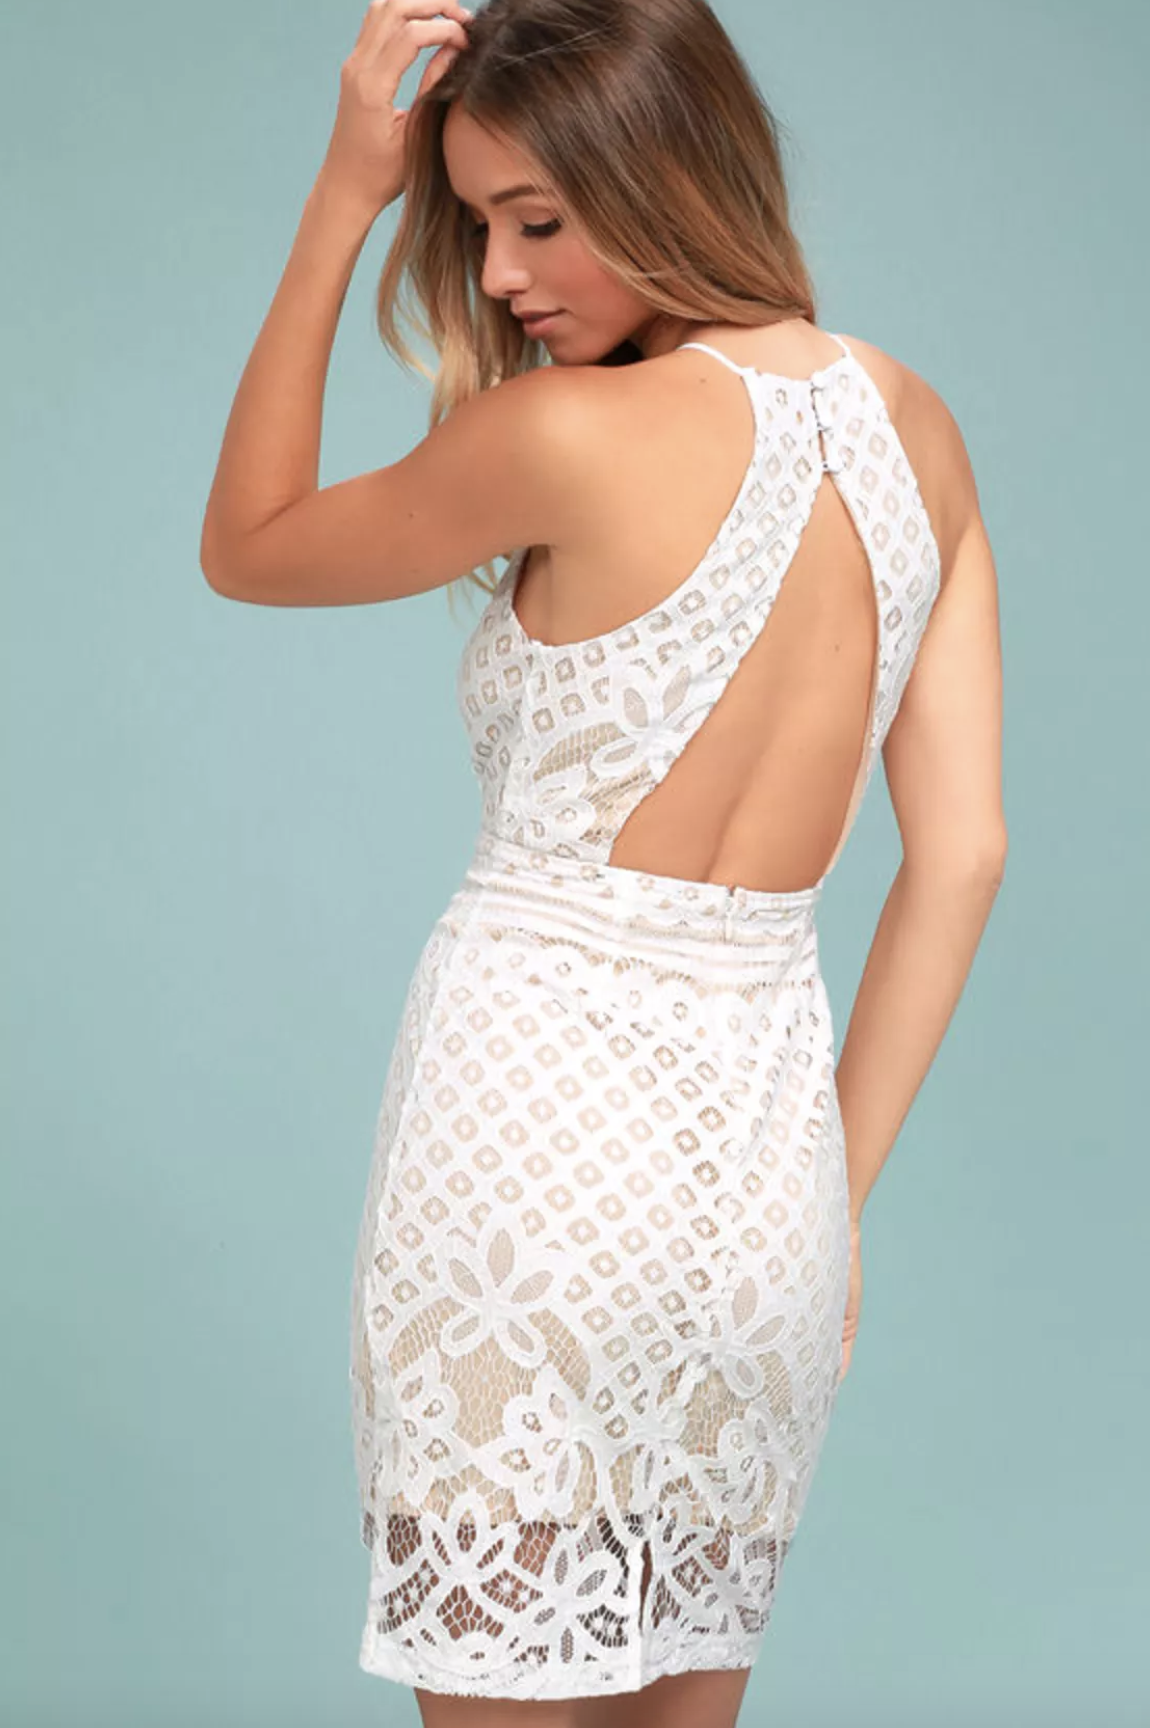 STEAL A KISS WHITE LACE DRESS   Cocktail dress, White dress, lace dress, nude and lace, bachelorette party dress, bridal shower dress, rehearsal dinner dress   www.thoughtfully-thrifted.com